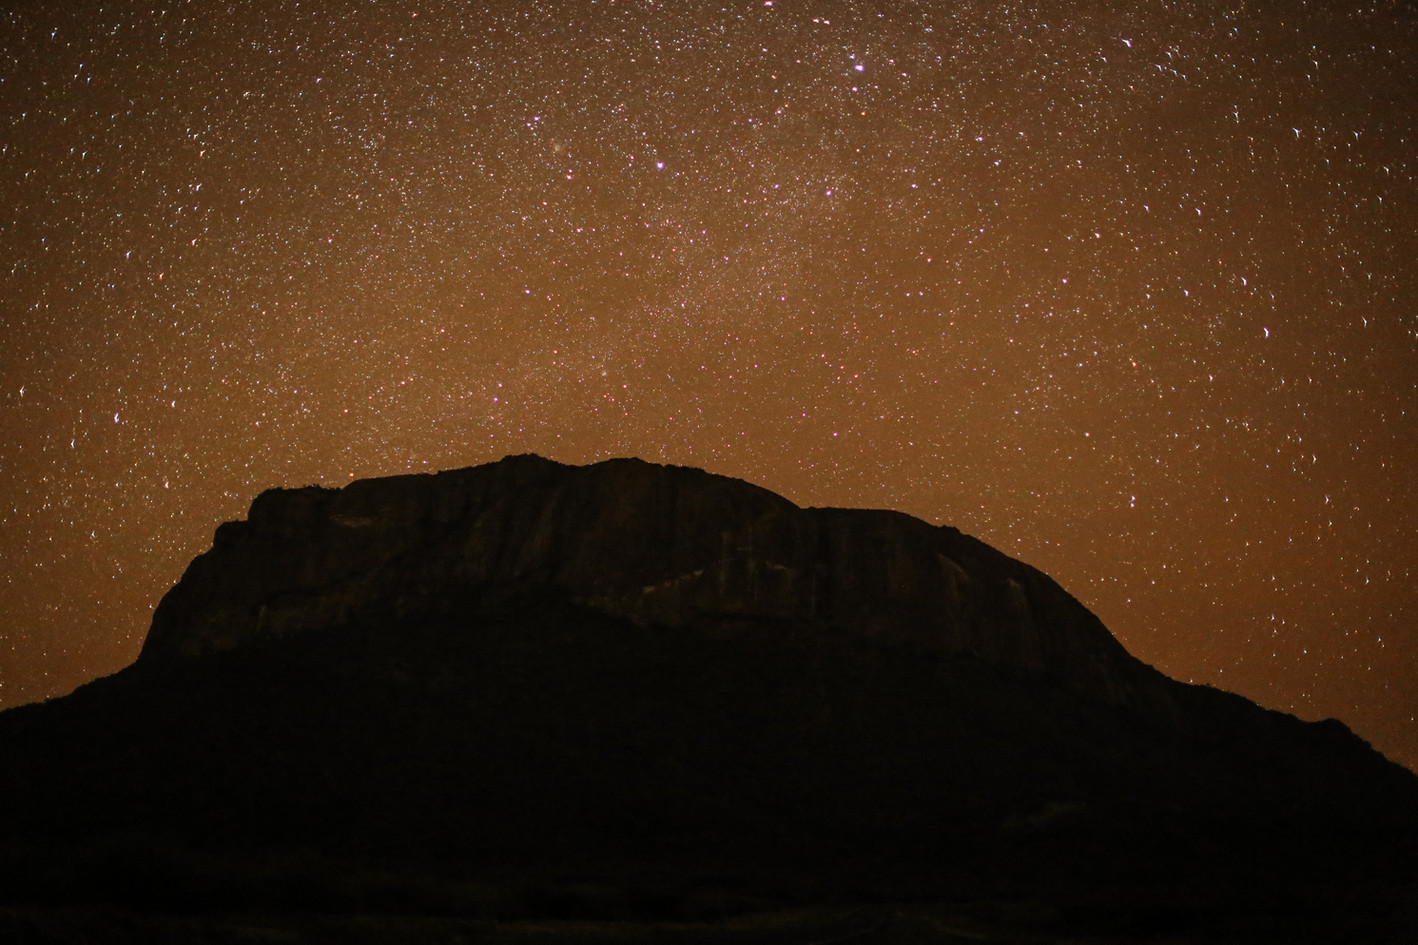 A sacred mountain under a sacred sky. Ololokwe at night.